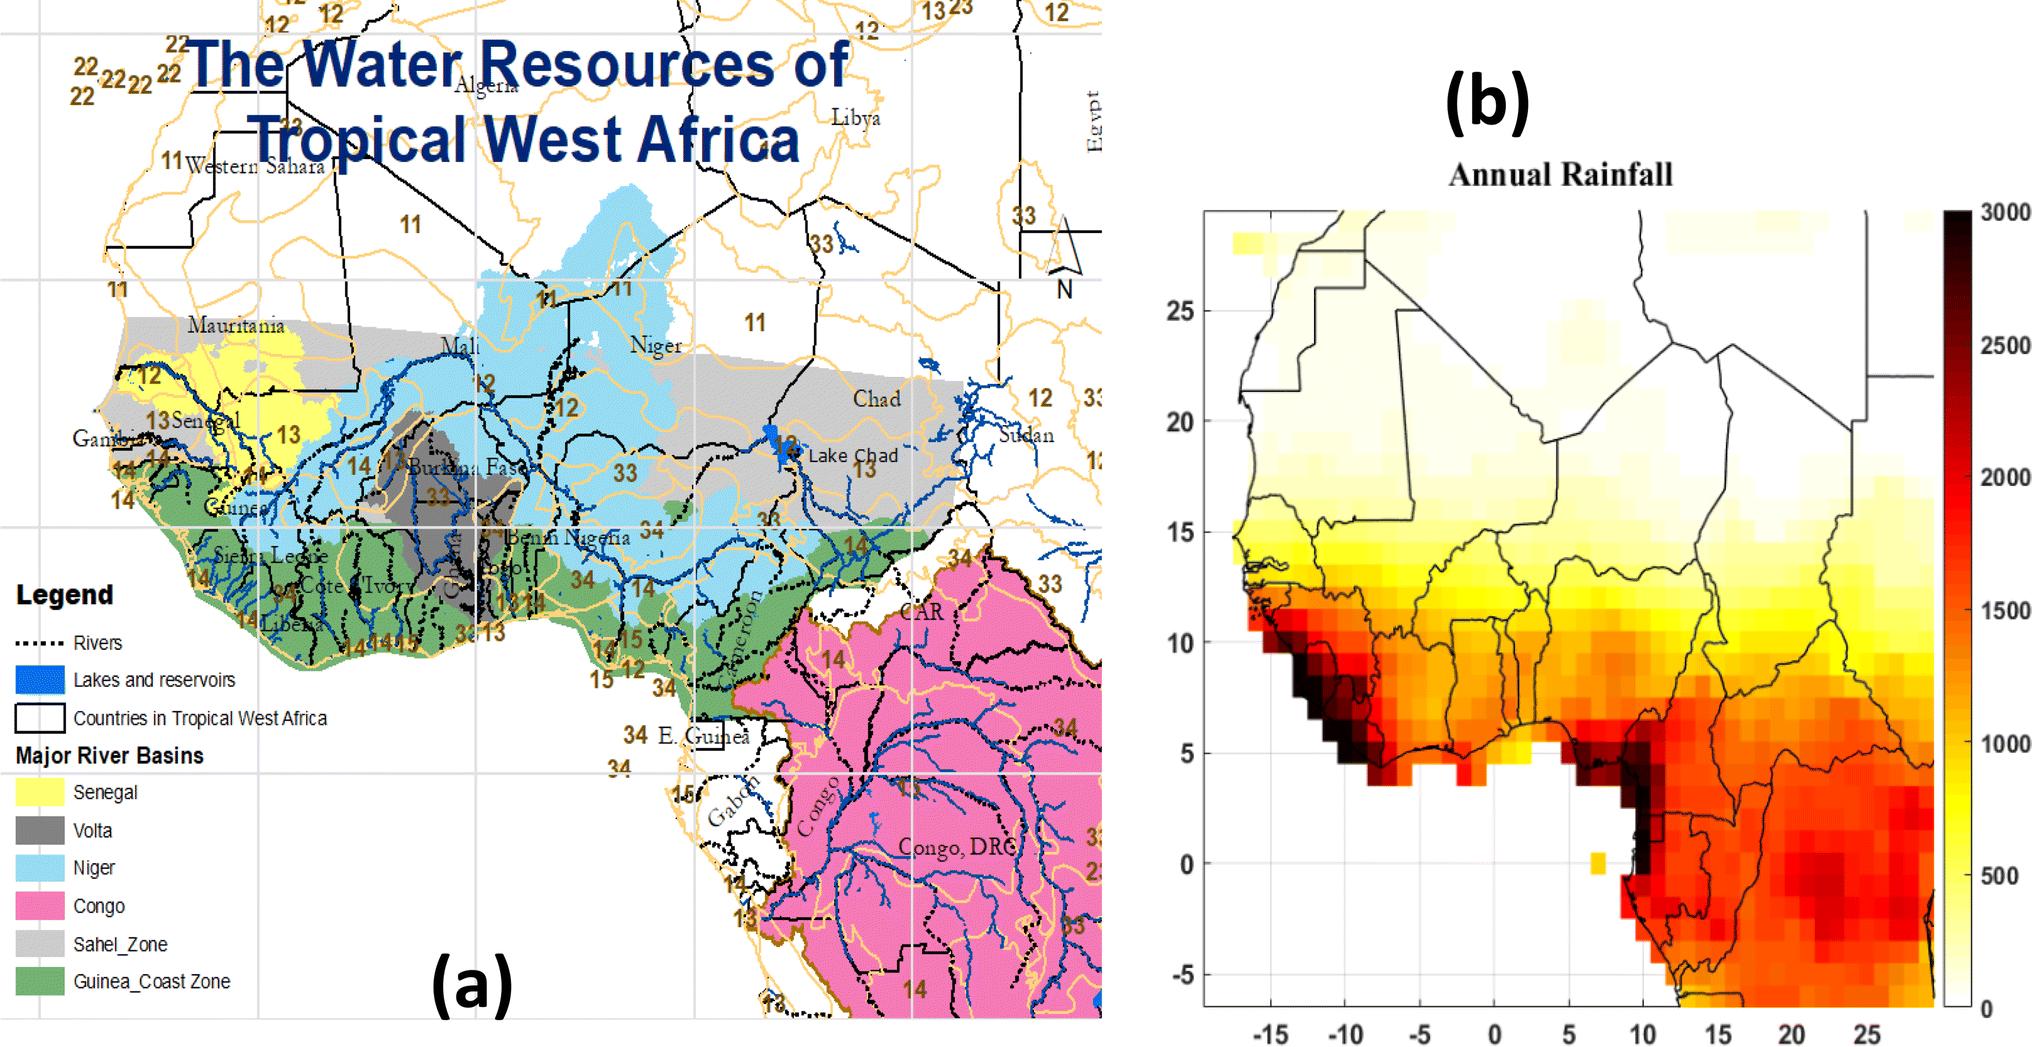 The water resources of tropical West Africa: problems